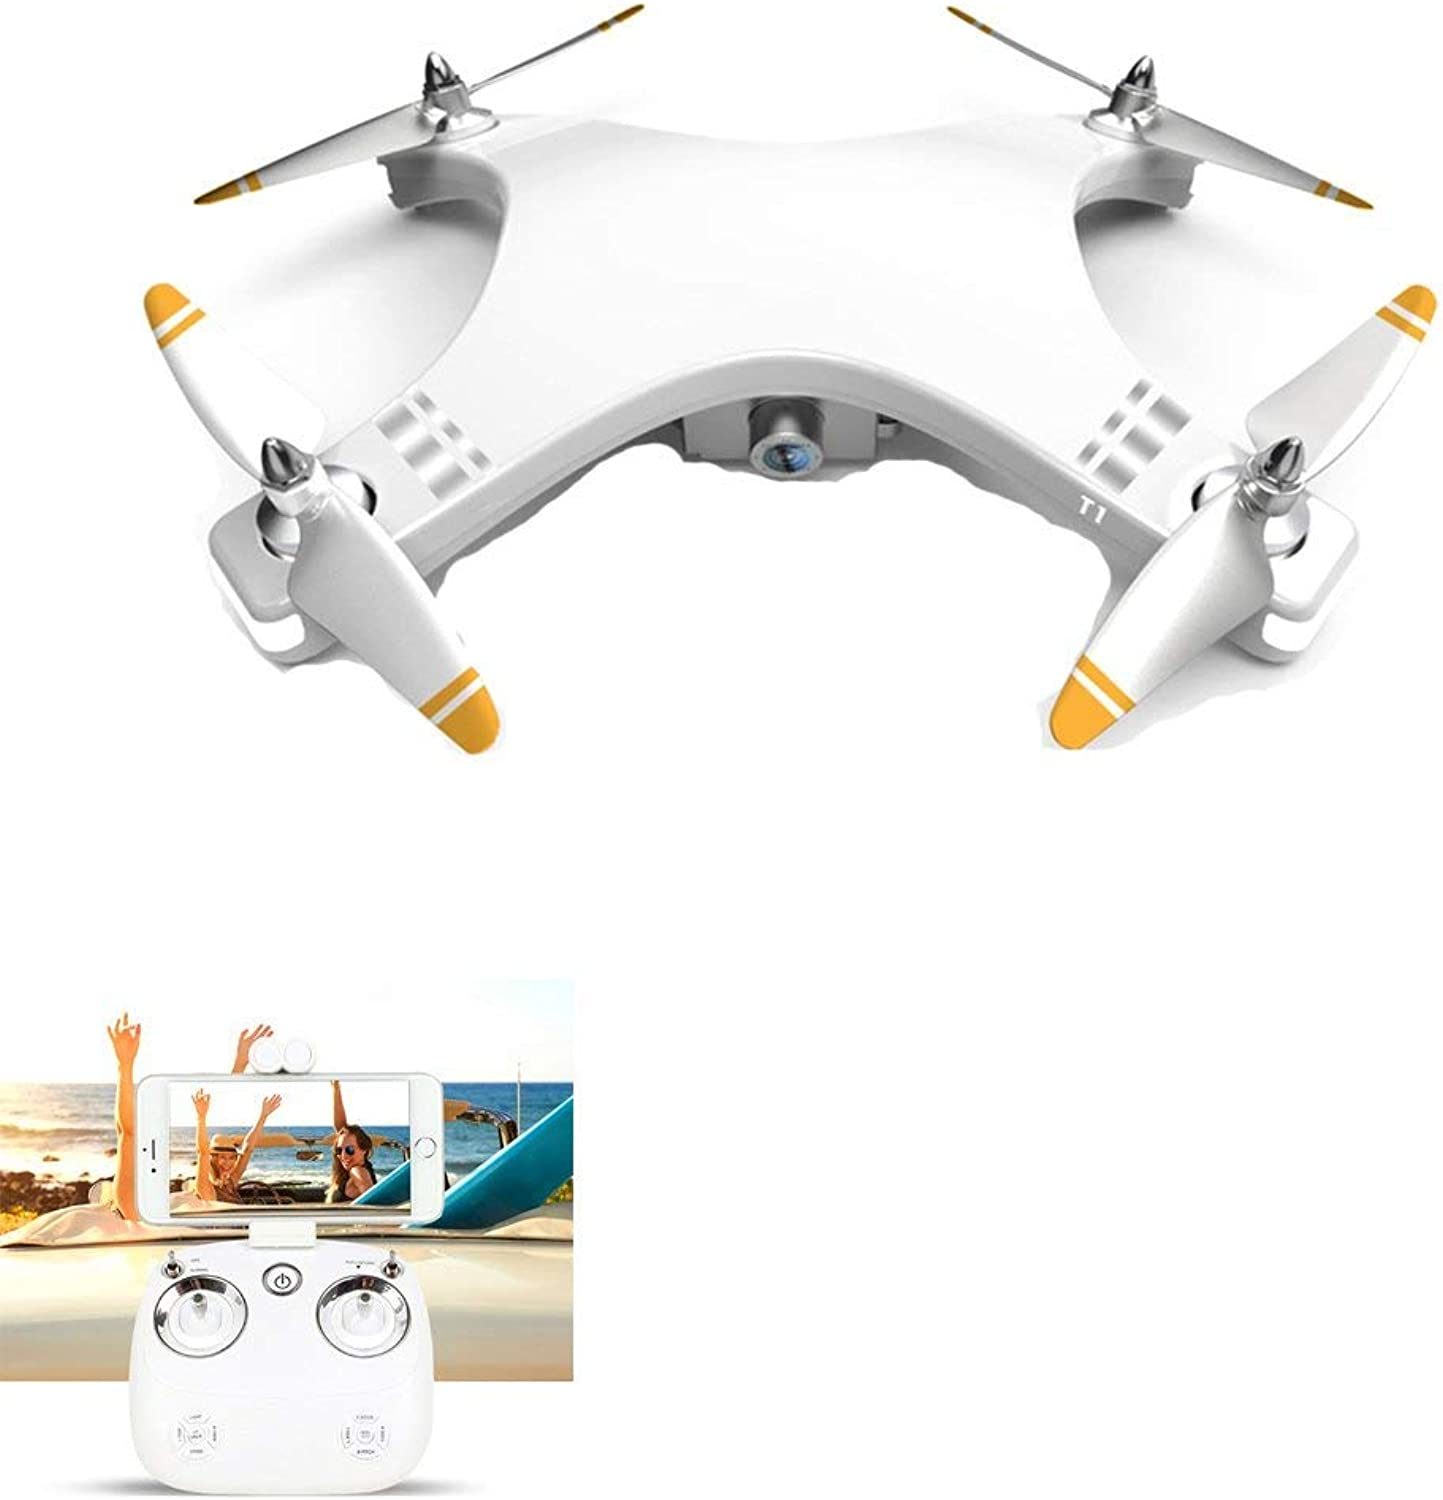 LNLJ GPS FPV RC Drone mit 720P HD Camera Live-Video-Brushless Motor One-Button Return Home 5.8GHz Quadcopter ausgestattet 4G Memory Card Multi-Funktion Aircraft Weiß